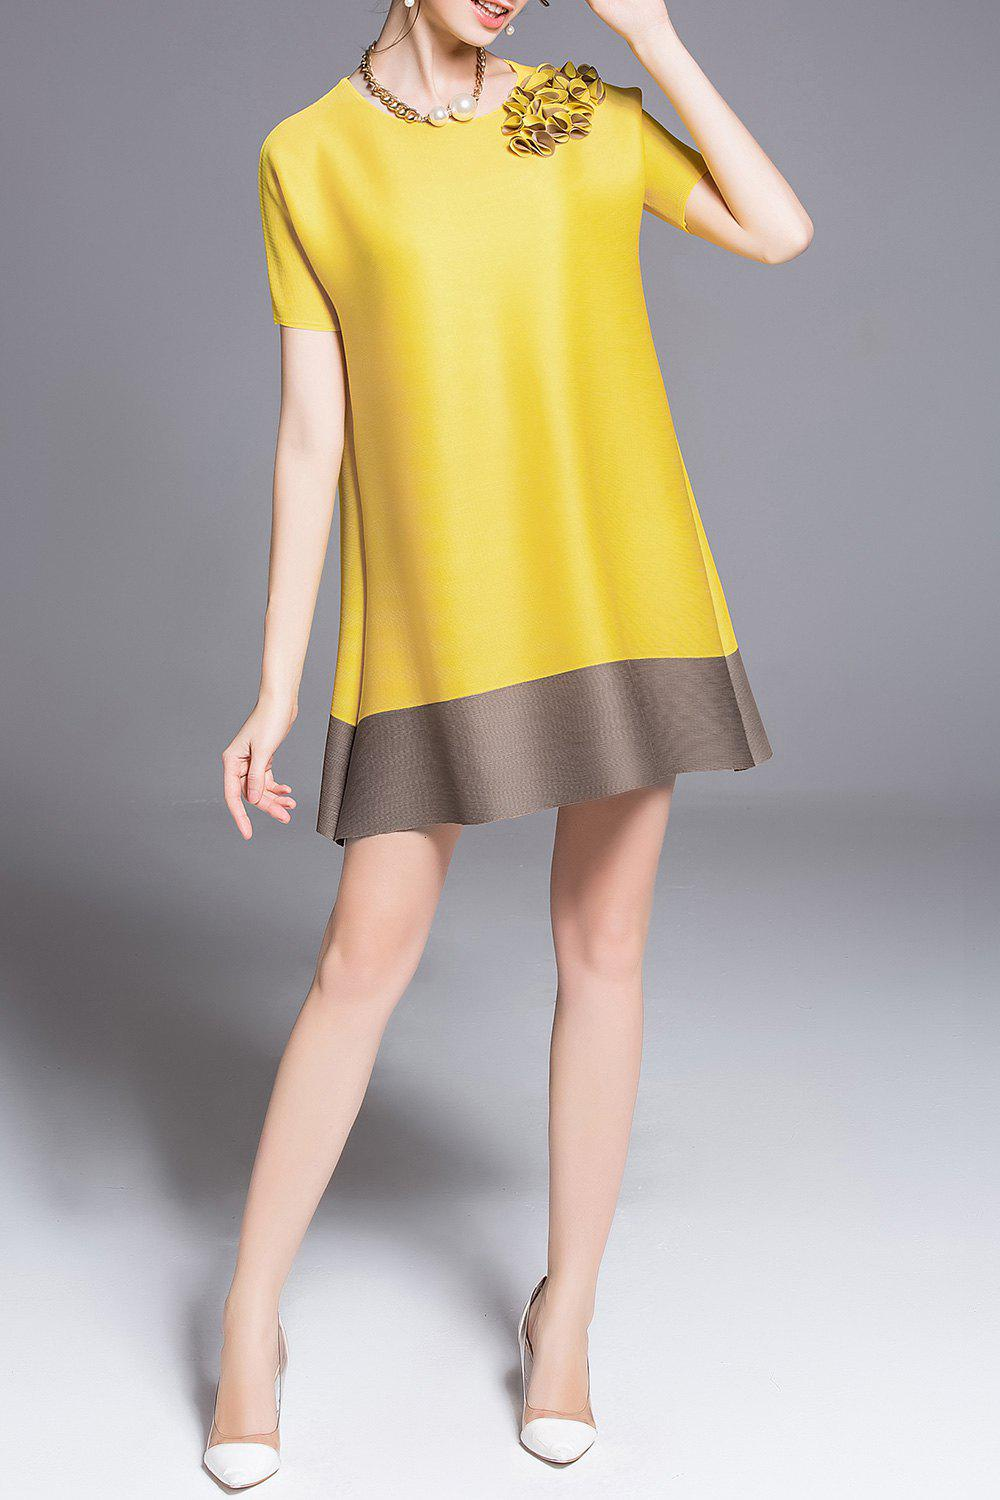 Stereo Floral Color Block Mini Dress - YELLOW ONE SIZE